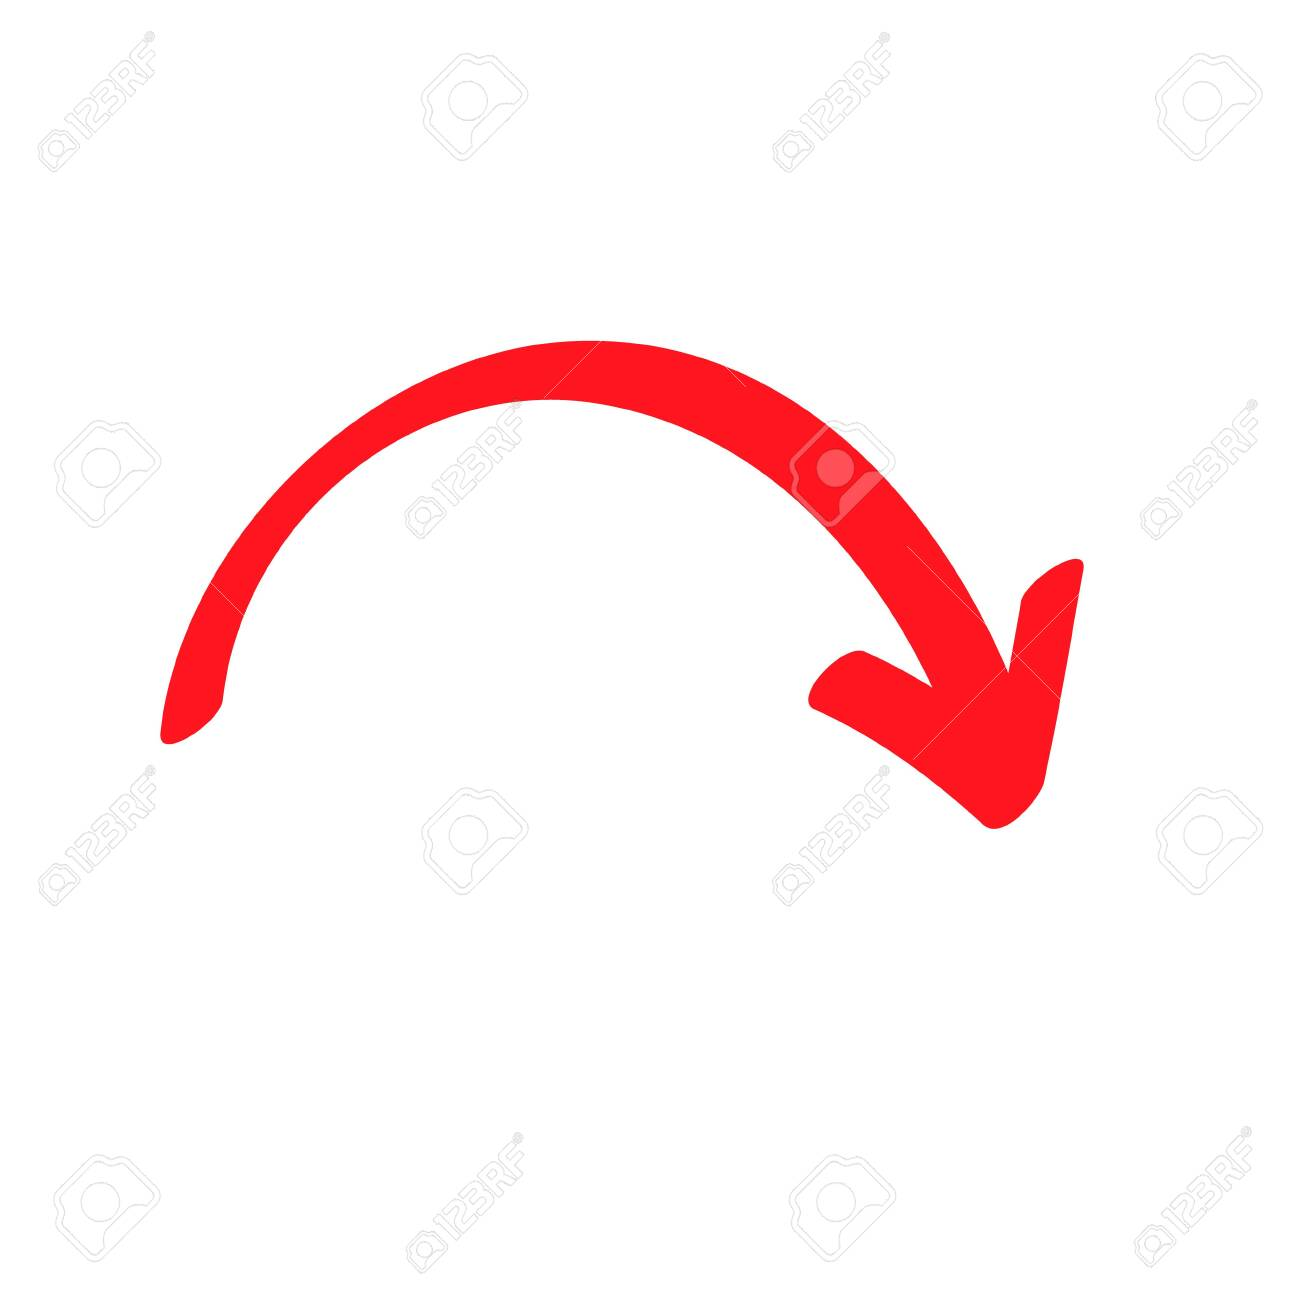 Red curved arrow sign, symbol and icon for business or website button decoration in isolated light background. - 133299884